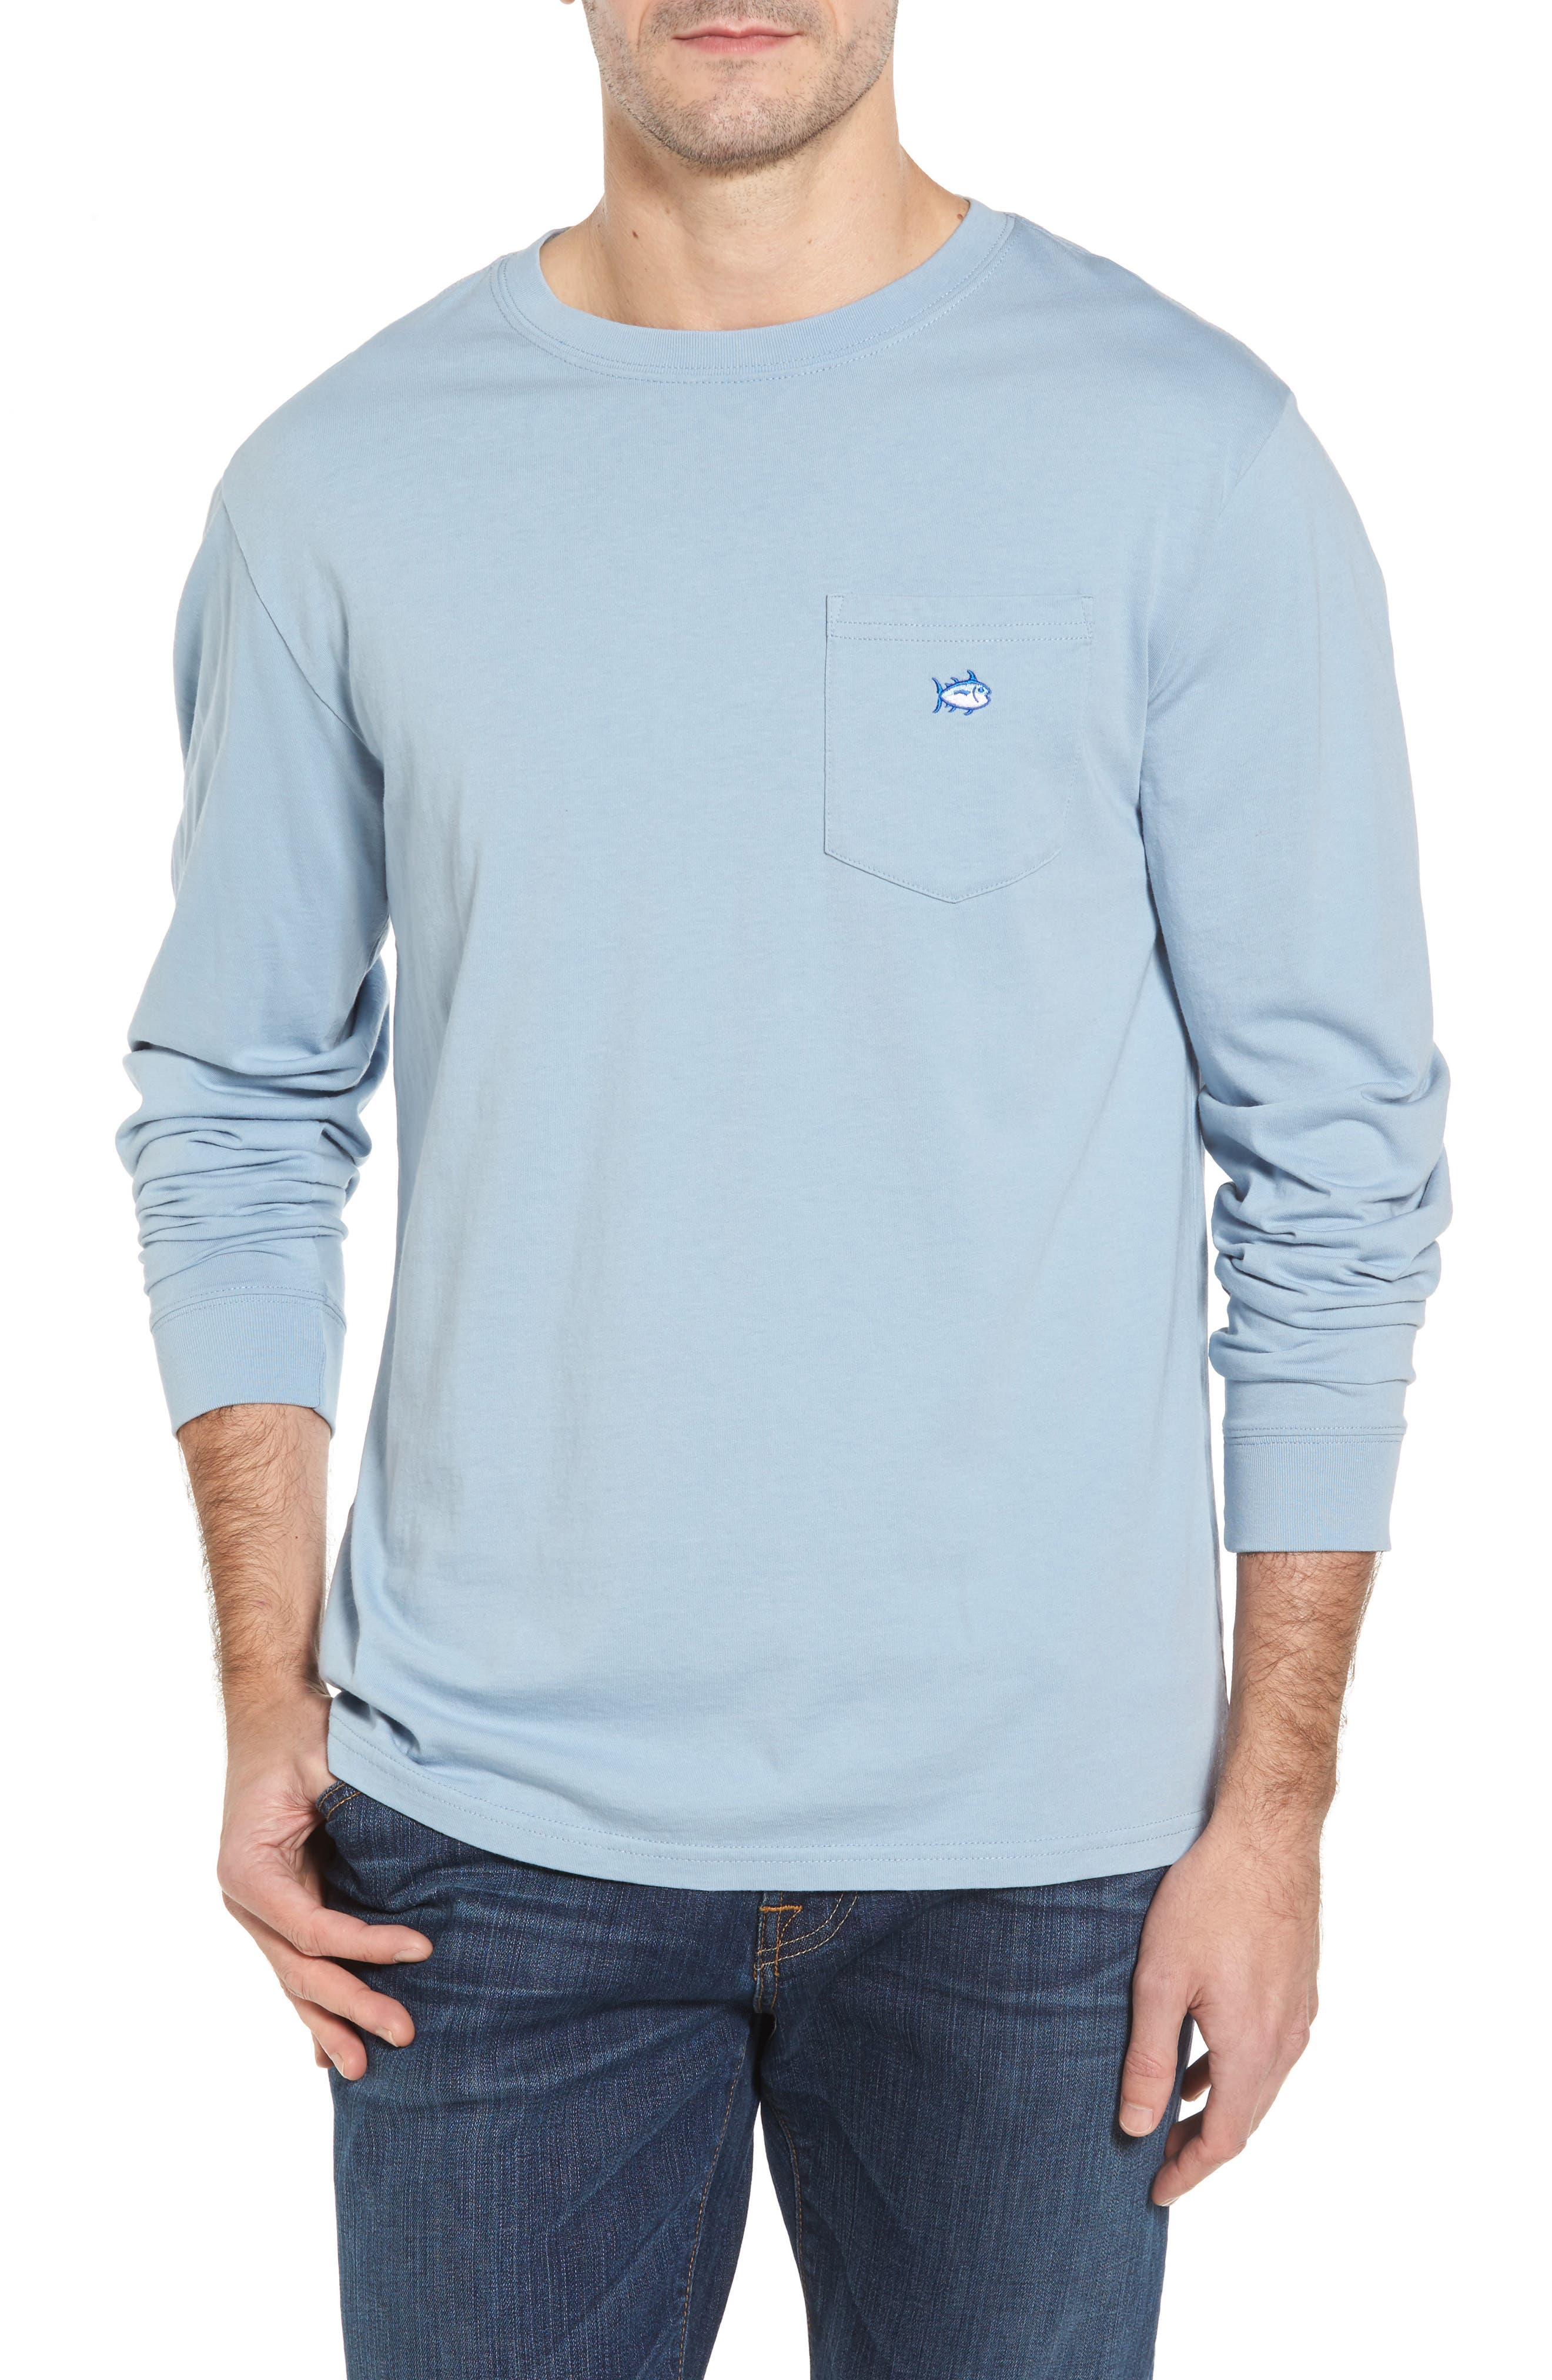 Alternate Image 1 Selected - Southern Tide Embroidered Long Sleeve T-Shirt